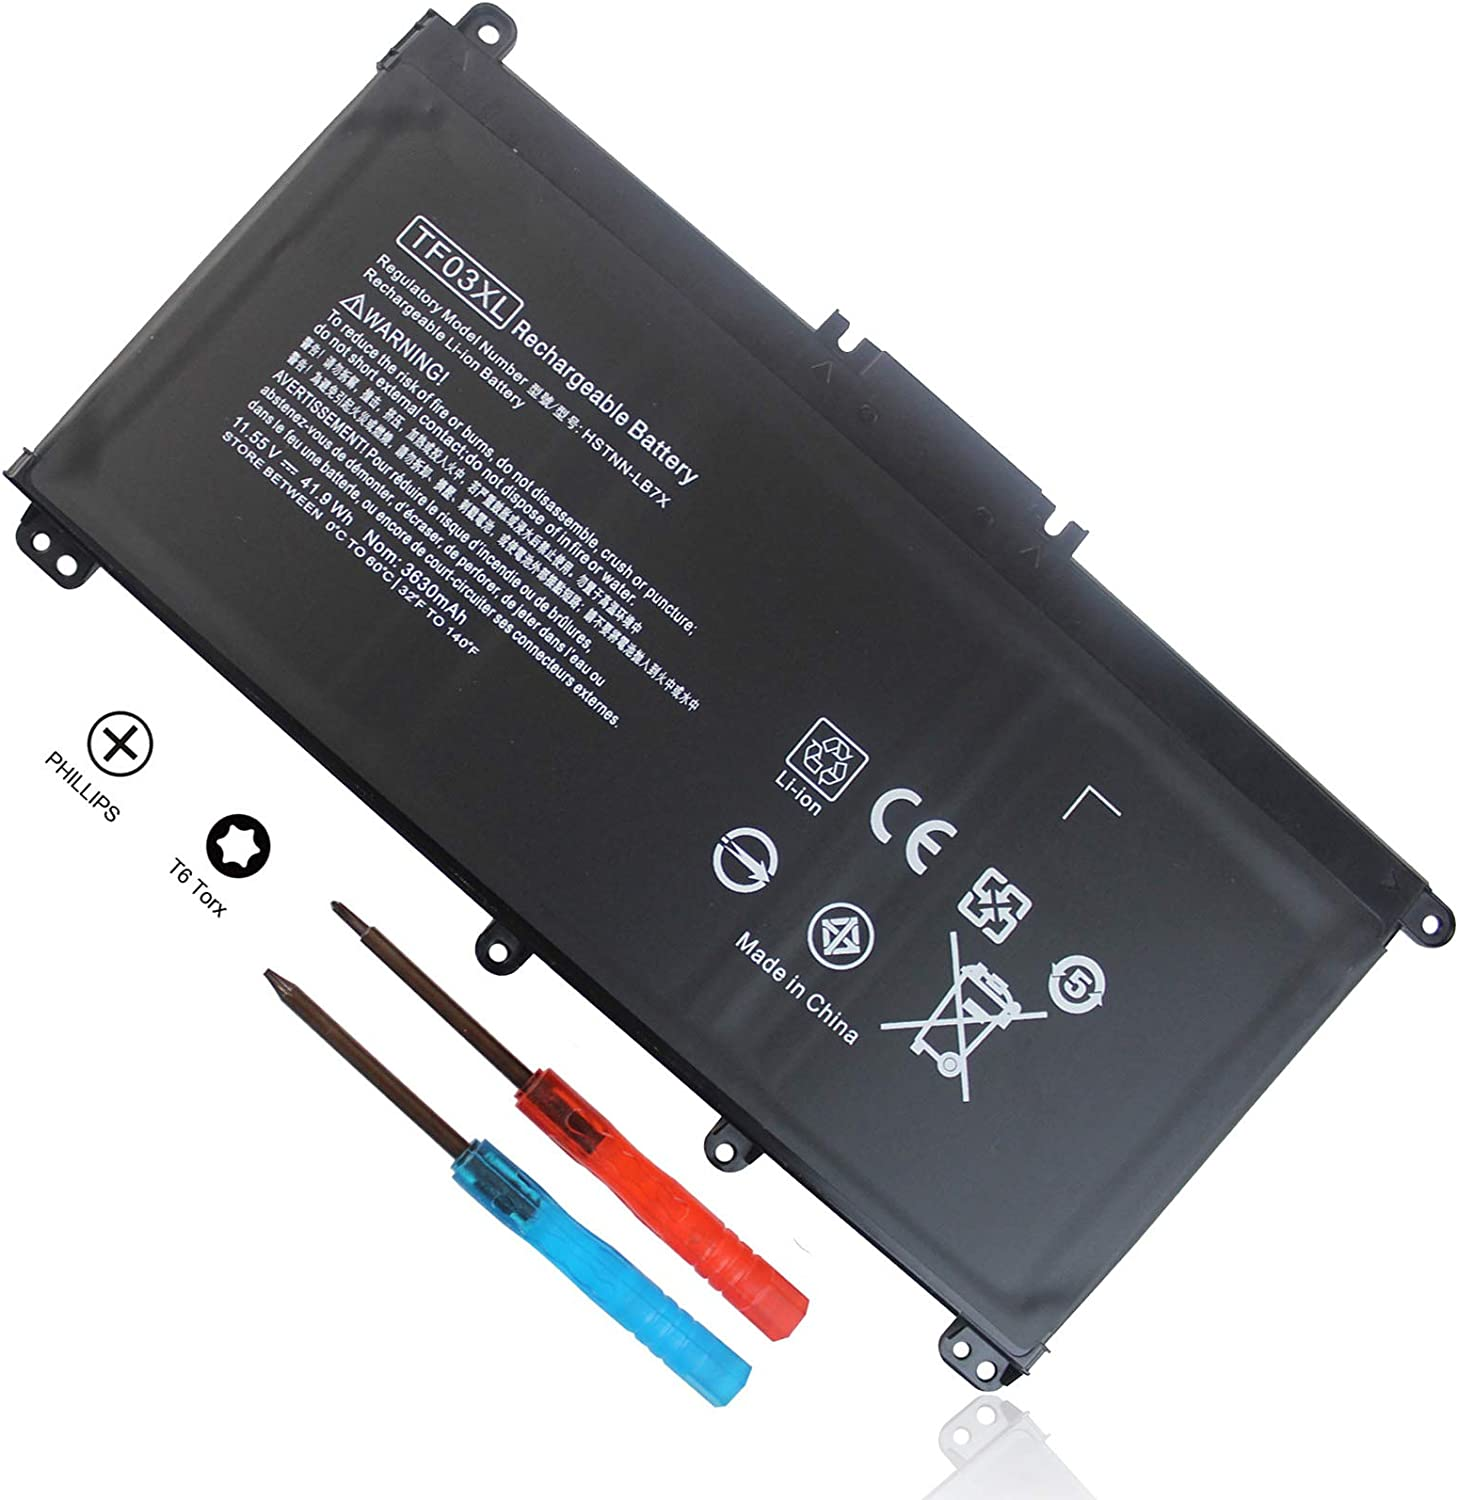 TF03XL 920070-855 920046-421 Battery for HP Pavilion 15-CC 15-CD 15-CC023CL 17-AR050WM 17-AR007CA 15-cc154cl 15-cc060wm 15-cc152od 15-cd040wm 920046-121 920046-541 HSTNN-LB7X HSTNN-IB7Y HSTNN-LB7J